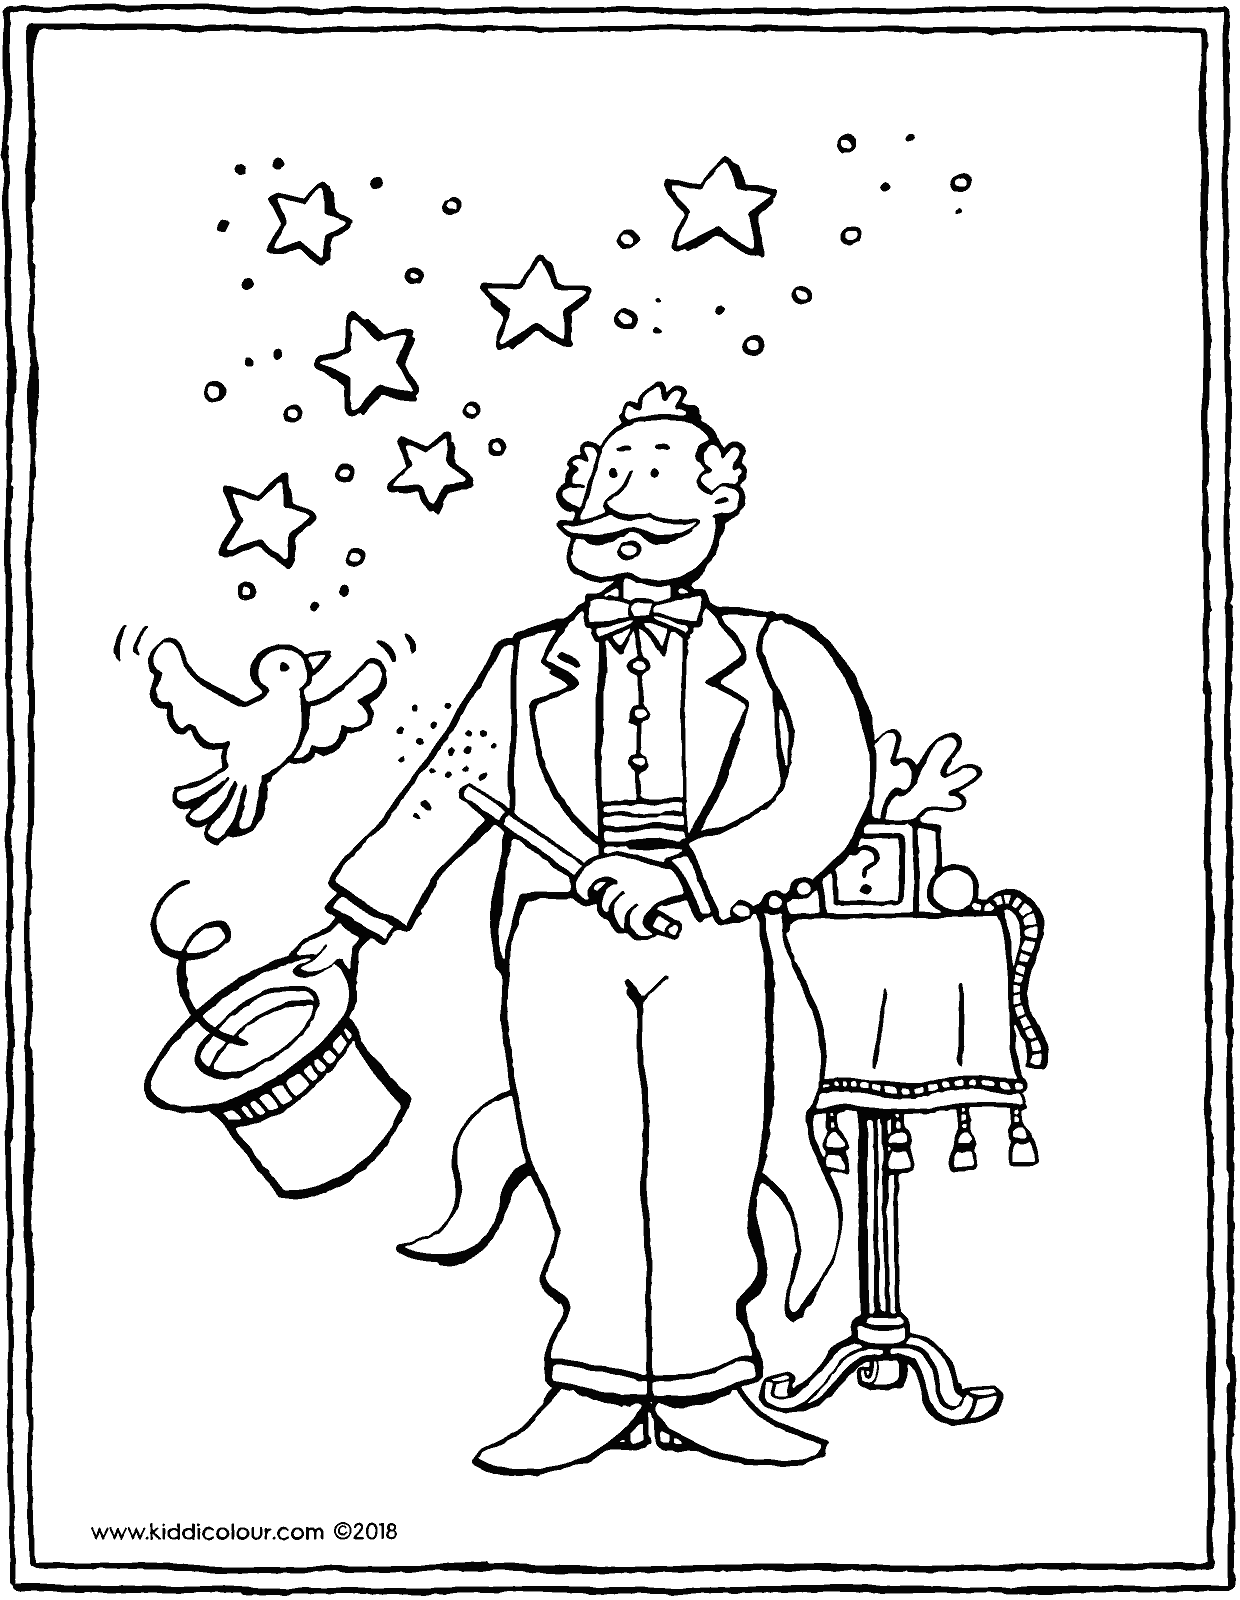 It's just a picture of Stupendous Magician Coloring Pages